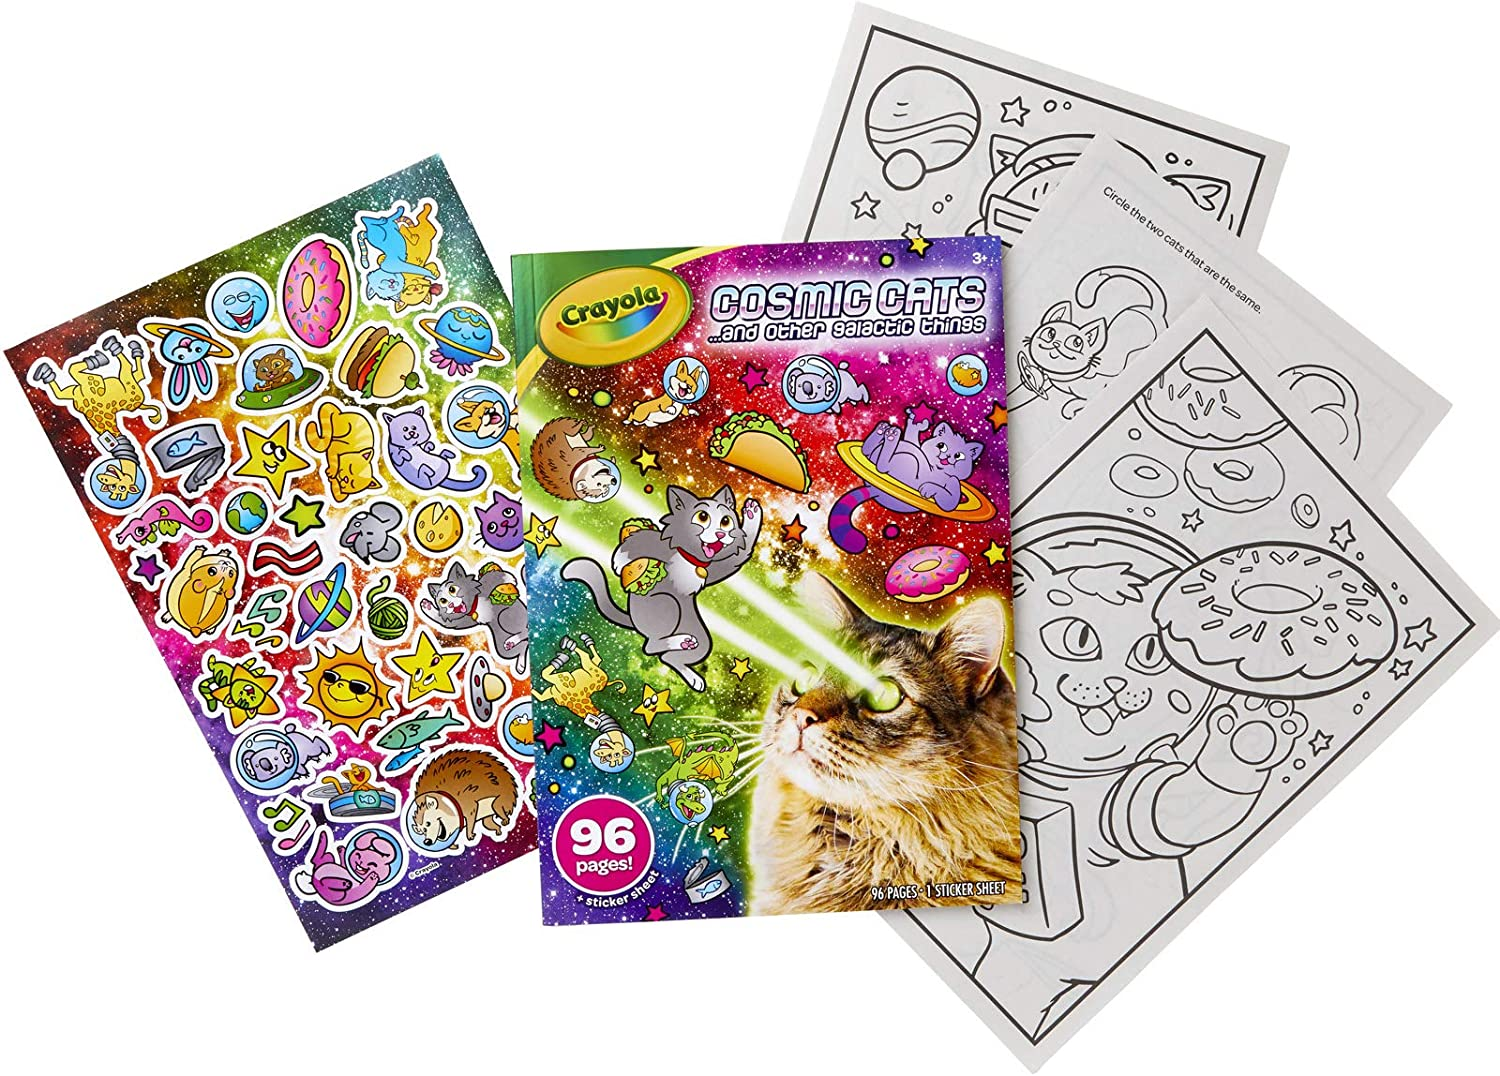 Crayola Cosmic Cats Coloring Book Multi Gift for Kids Sticker Sheet 96 Pgs